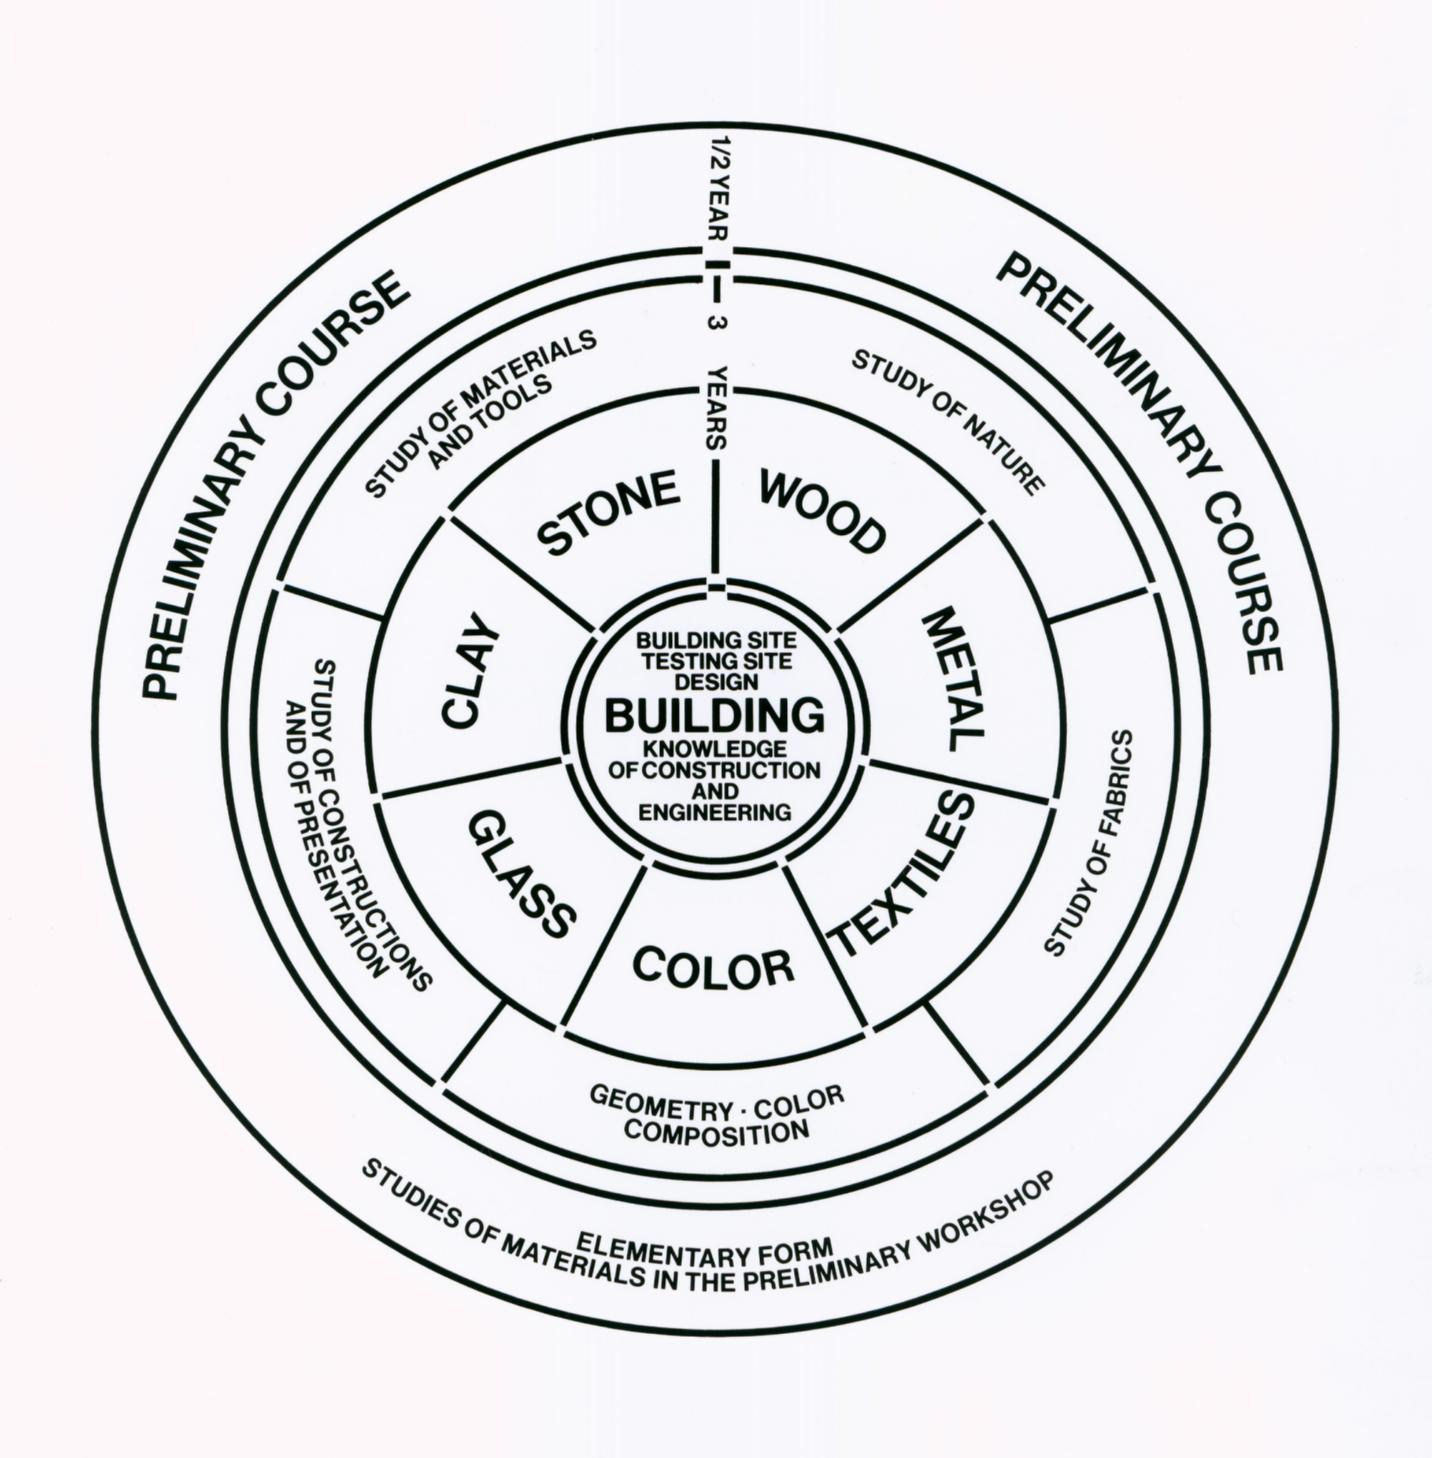 Learning In The Bauhaus School Five Lessons For Todays Designers